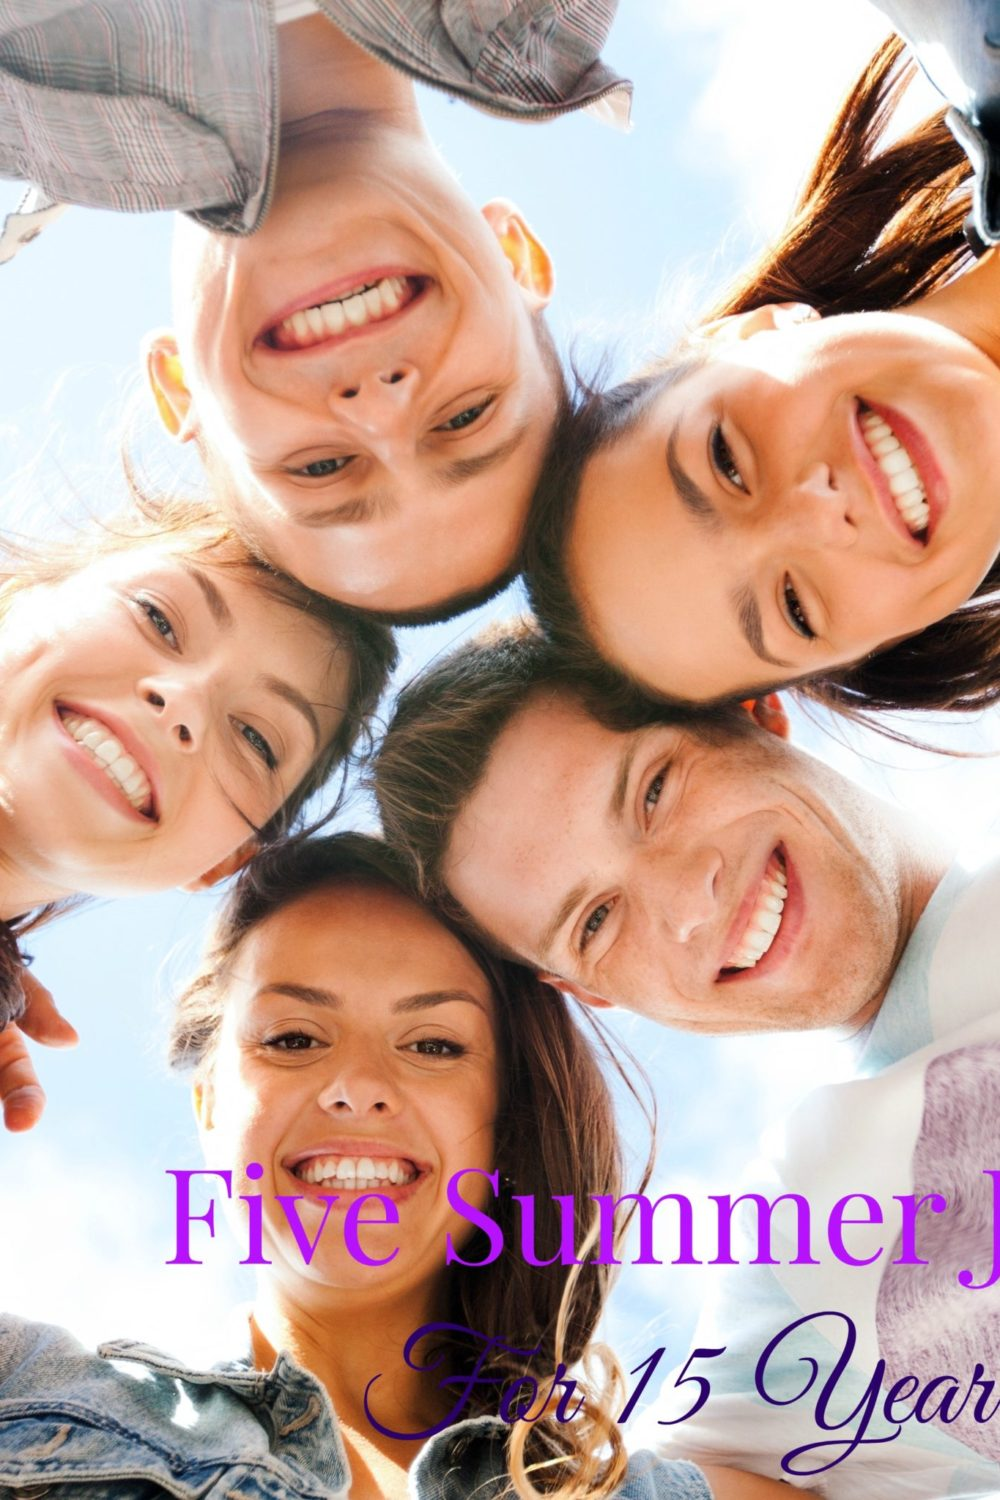 Five Summer Jobs For 15 Year Olds